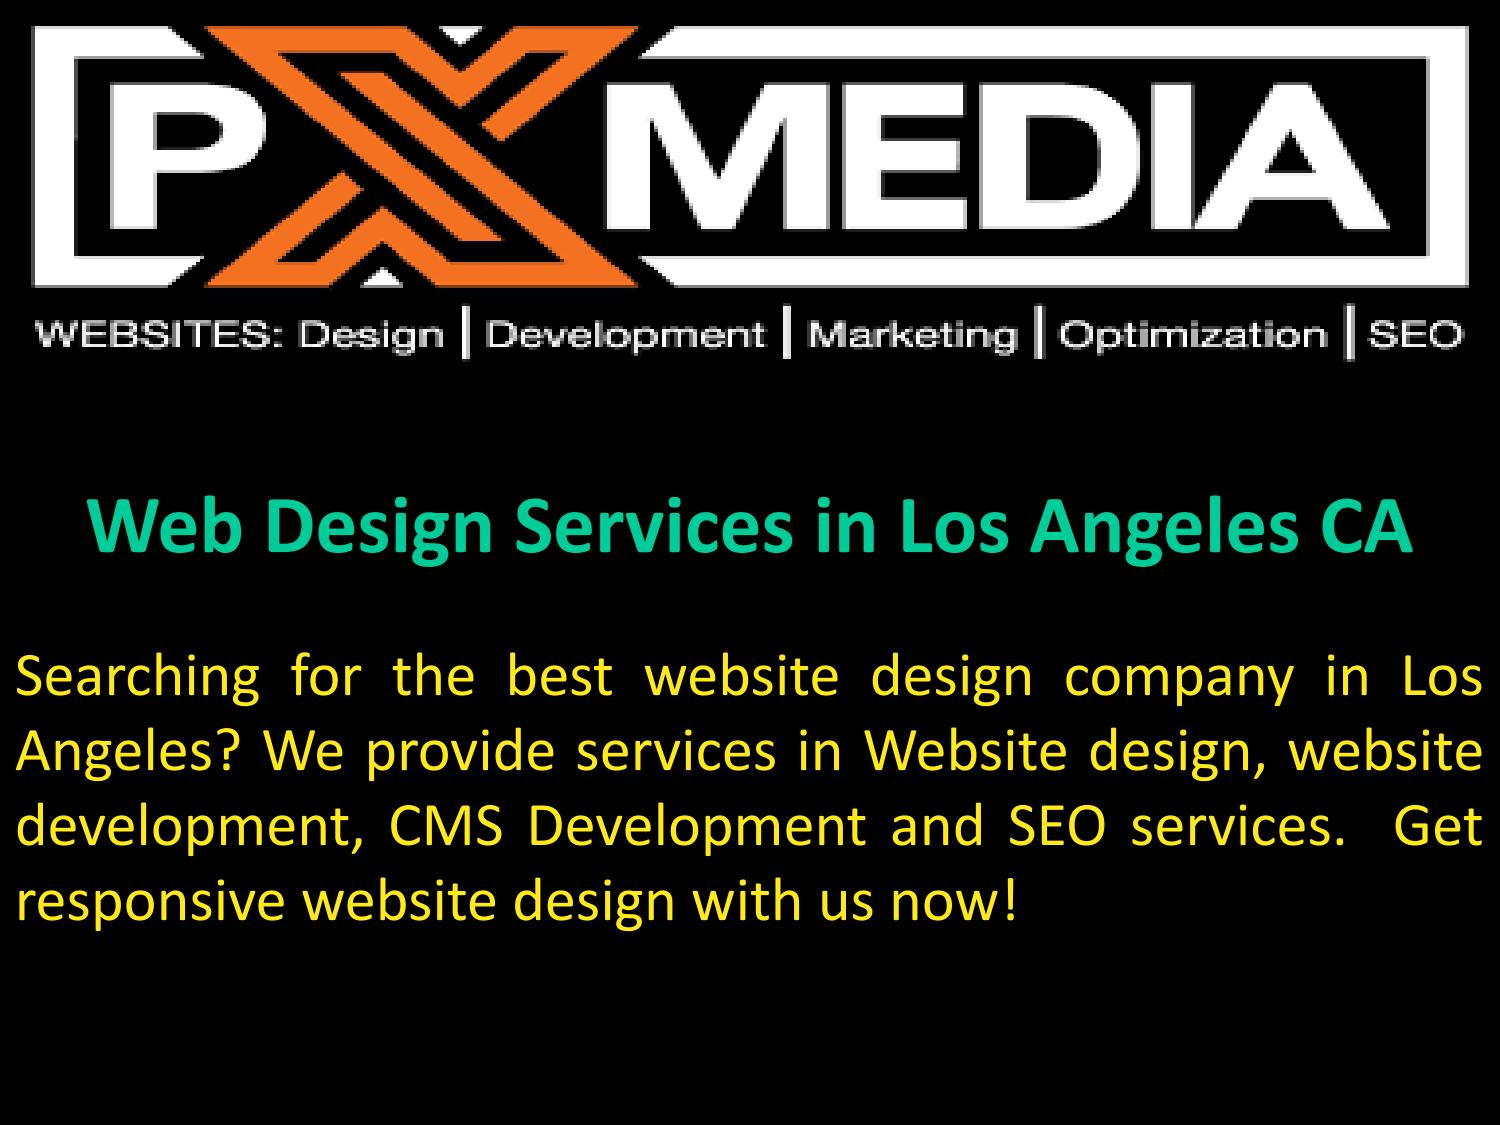 Website Design Company In Los Angeles Ca By Px Media Issuu